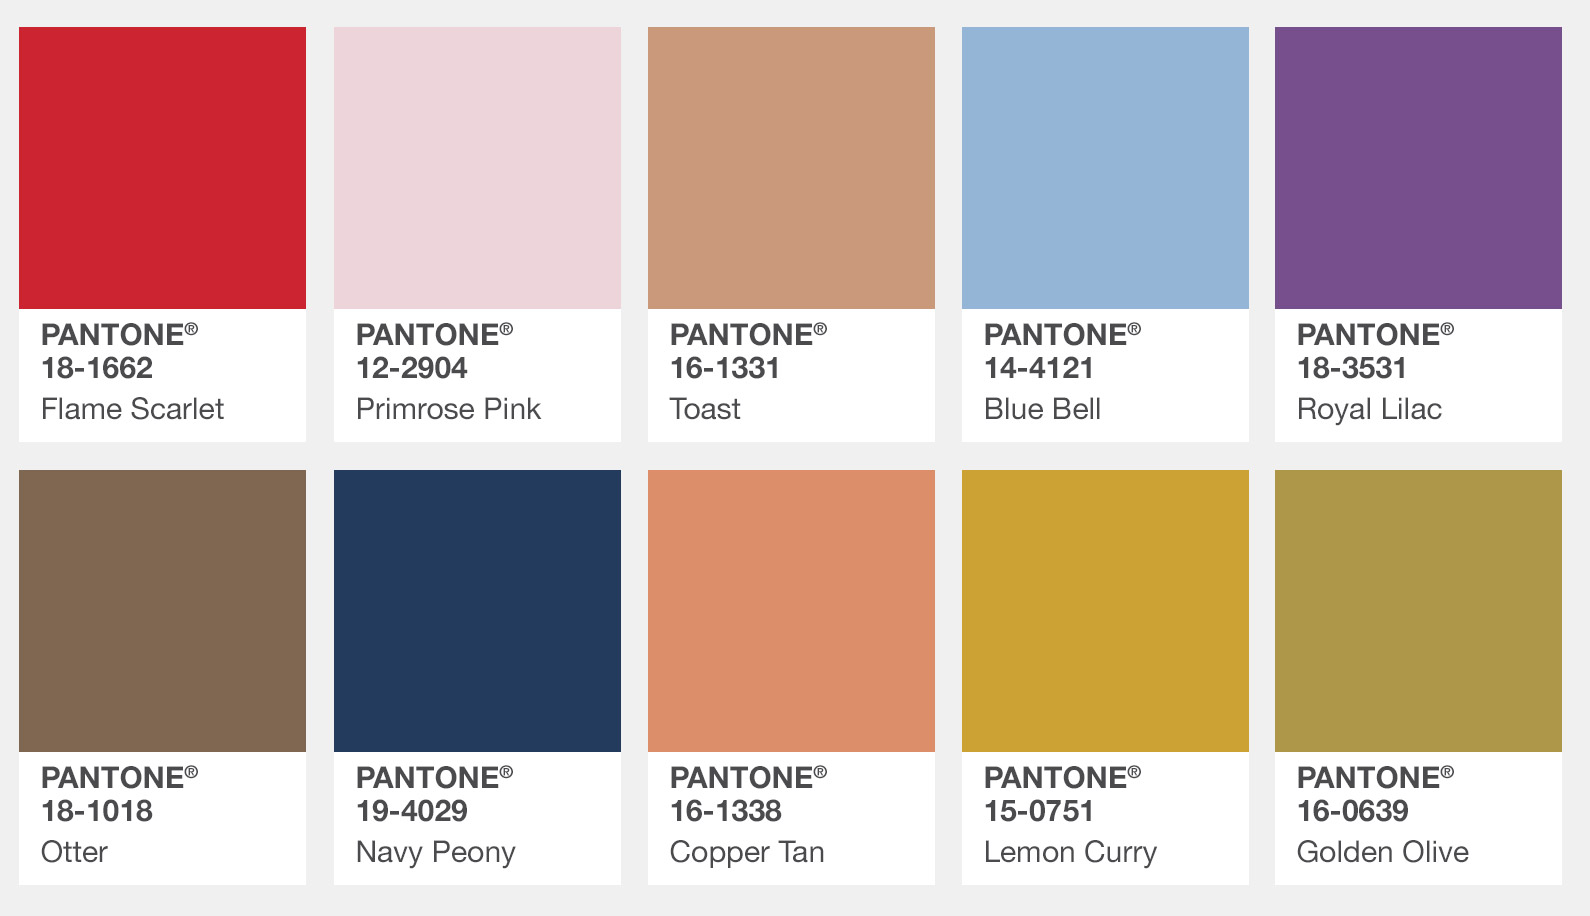 Pantone Colour Swatches - Fall 2017 London